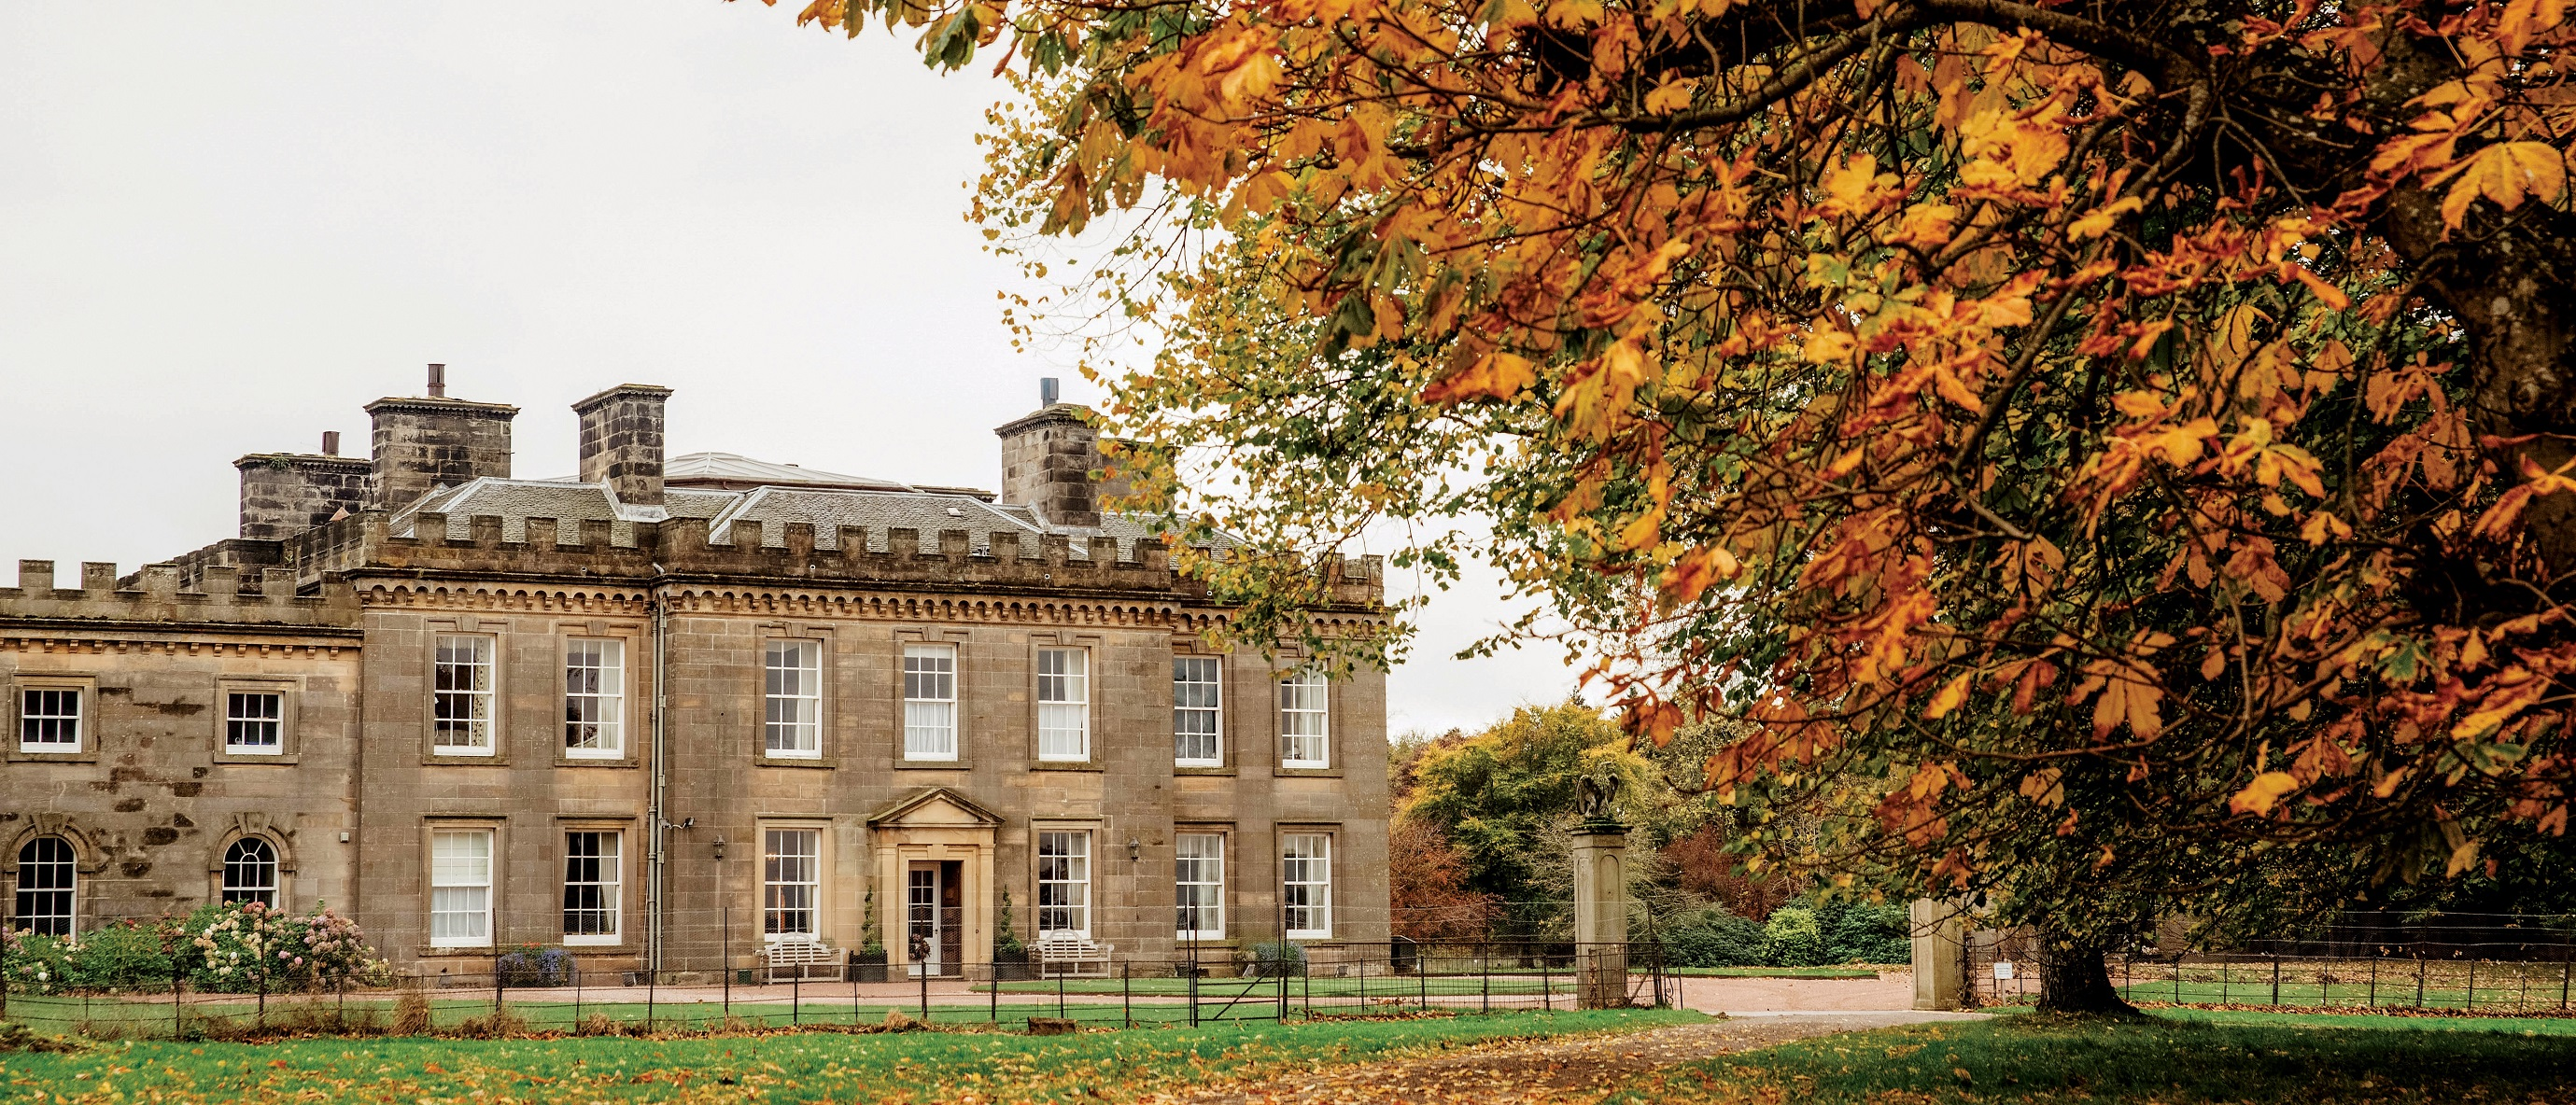 18th century country house, with autumnal trees